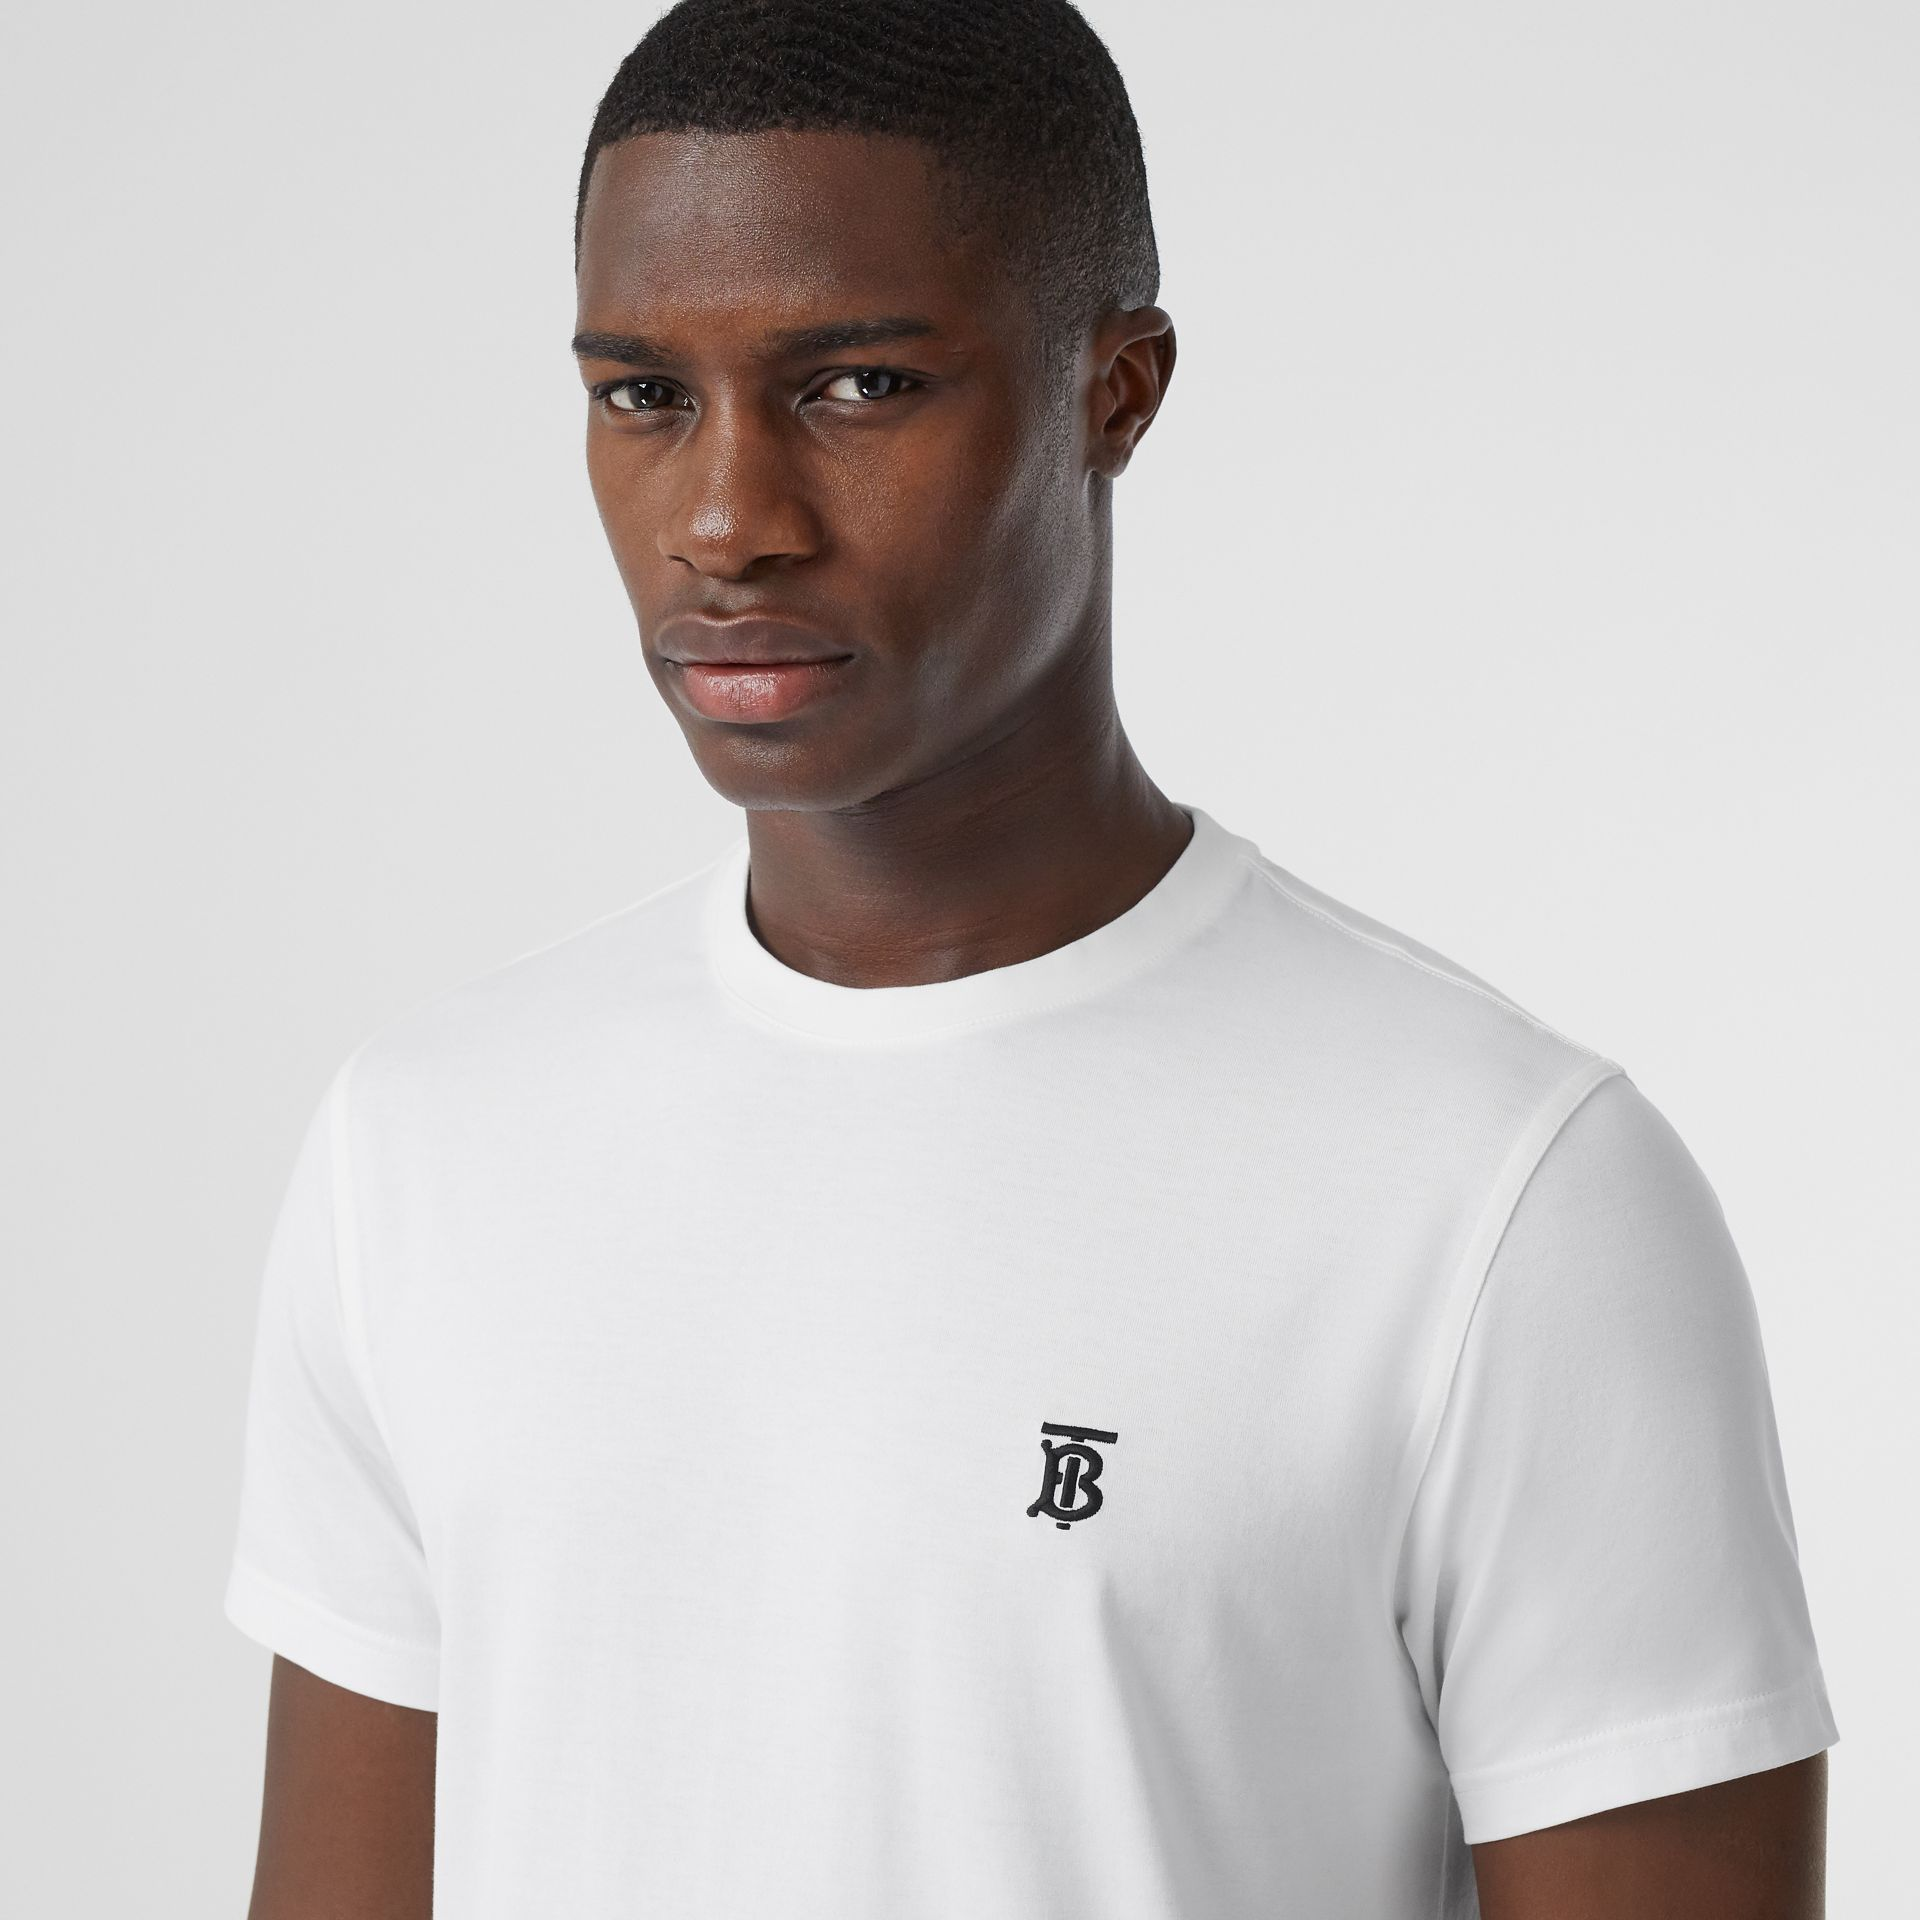 Monogram Motif Cotton T-shirt in White - Men | Burberry Canada - gallery image 1